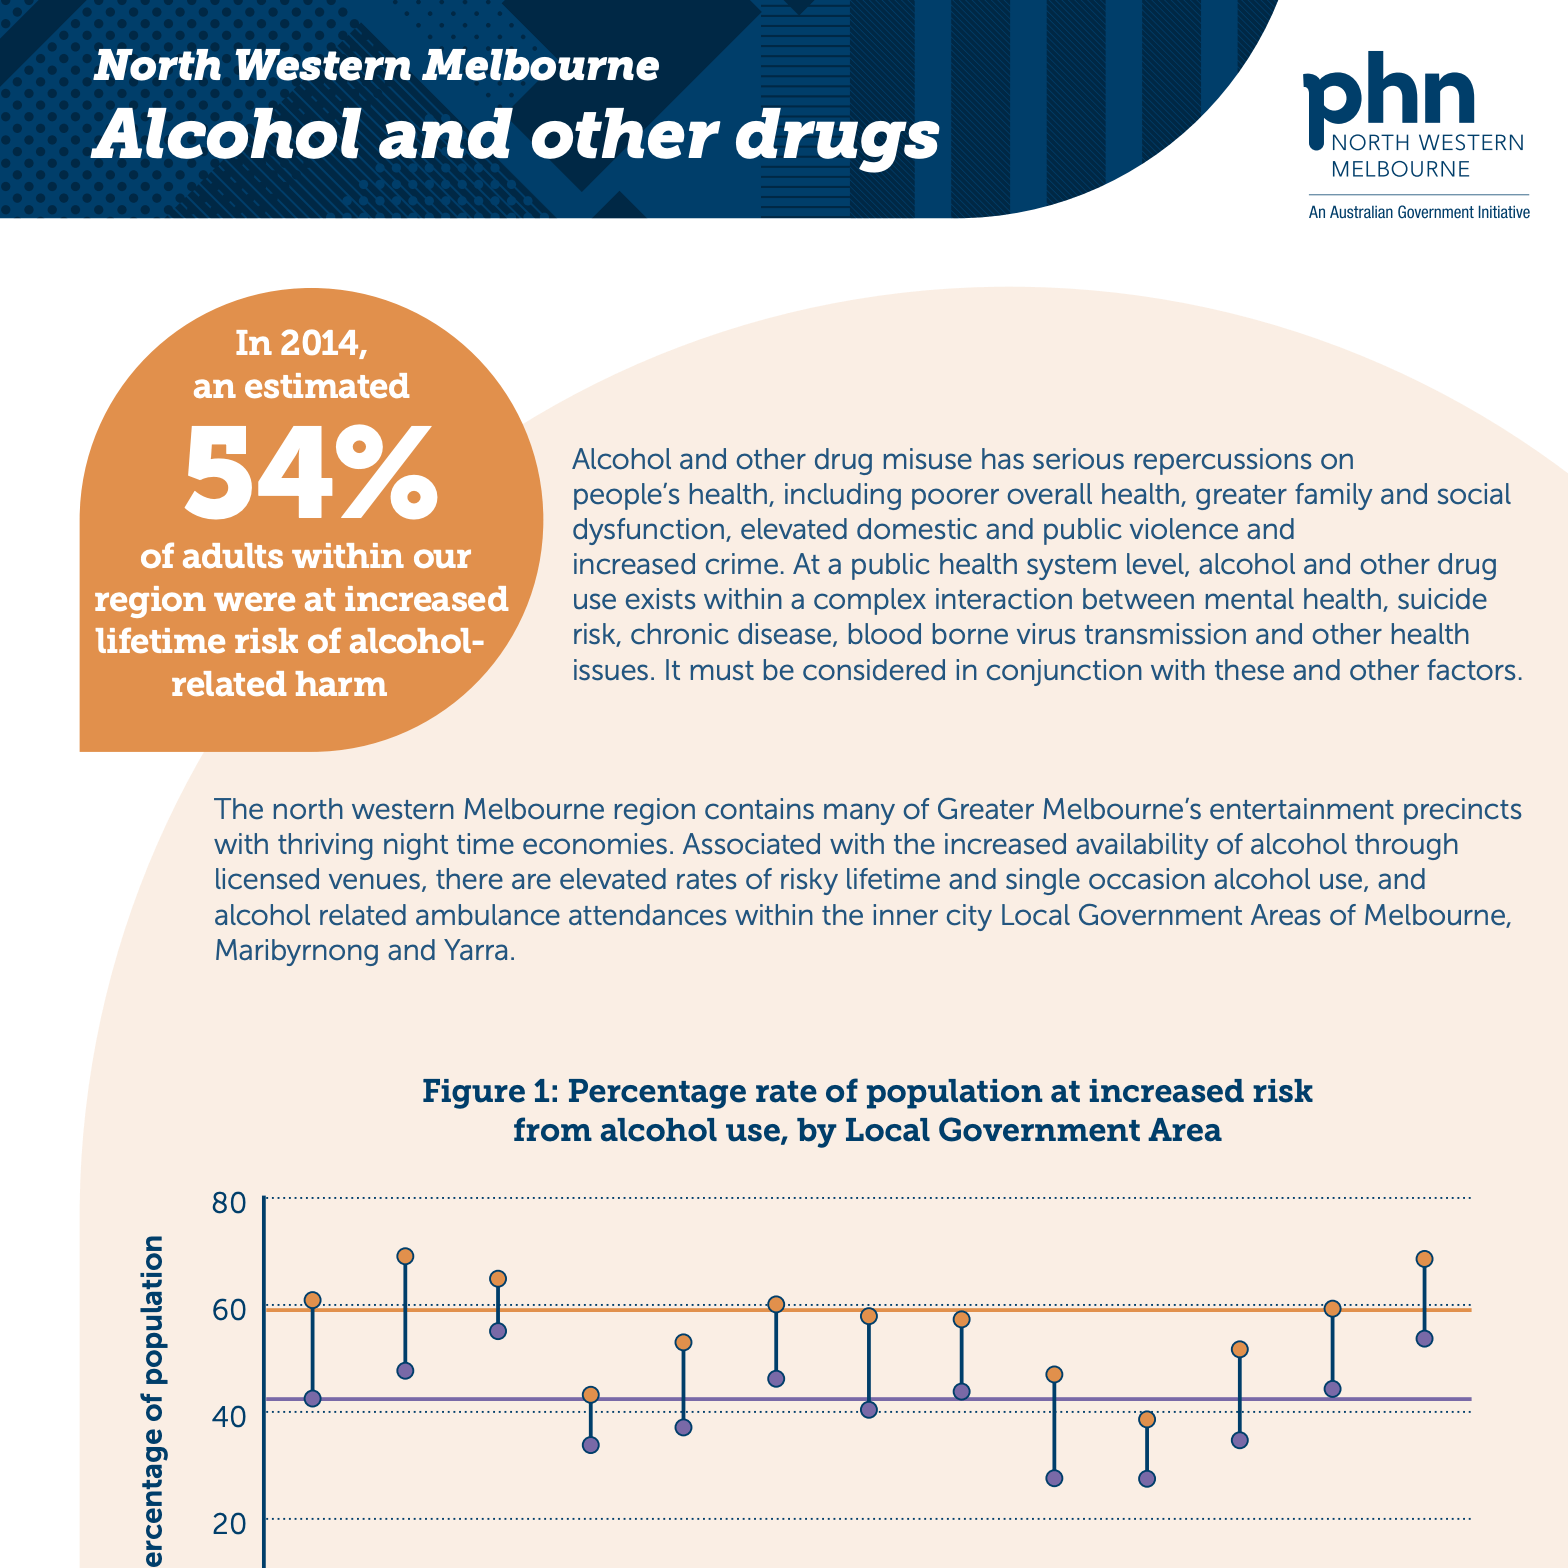 NWMPHN Alcohol and Other Drugs infographic